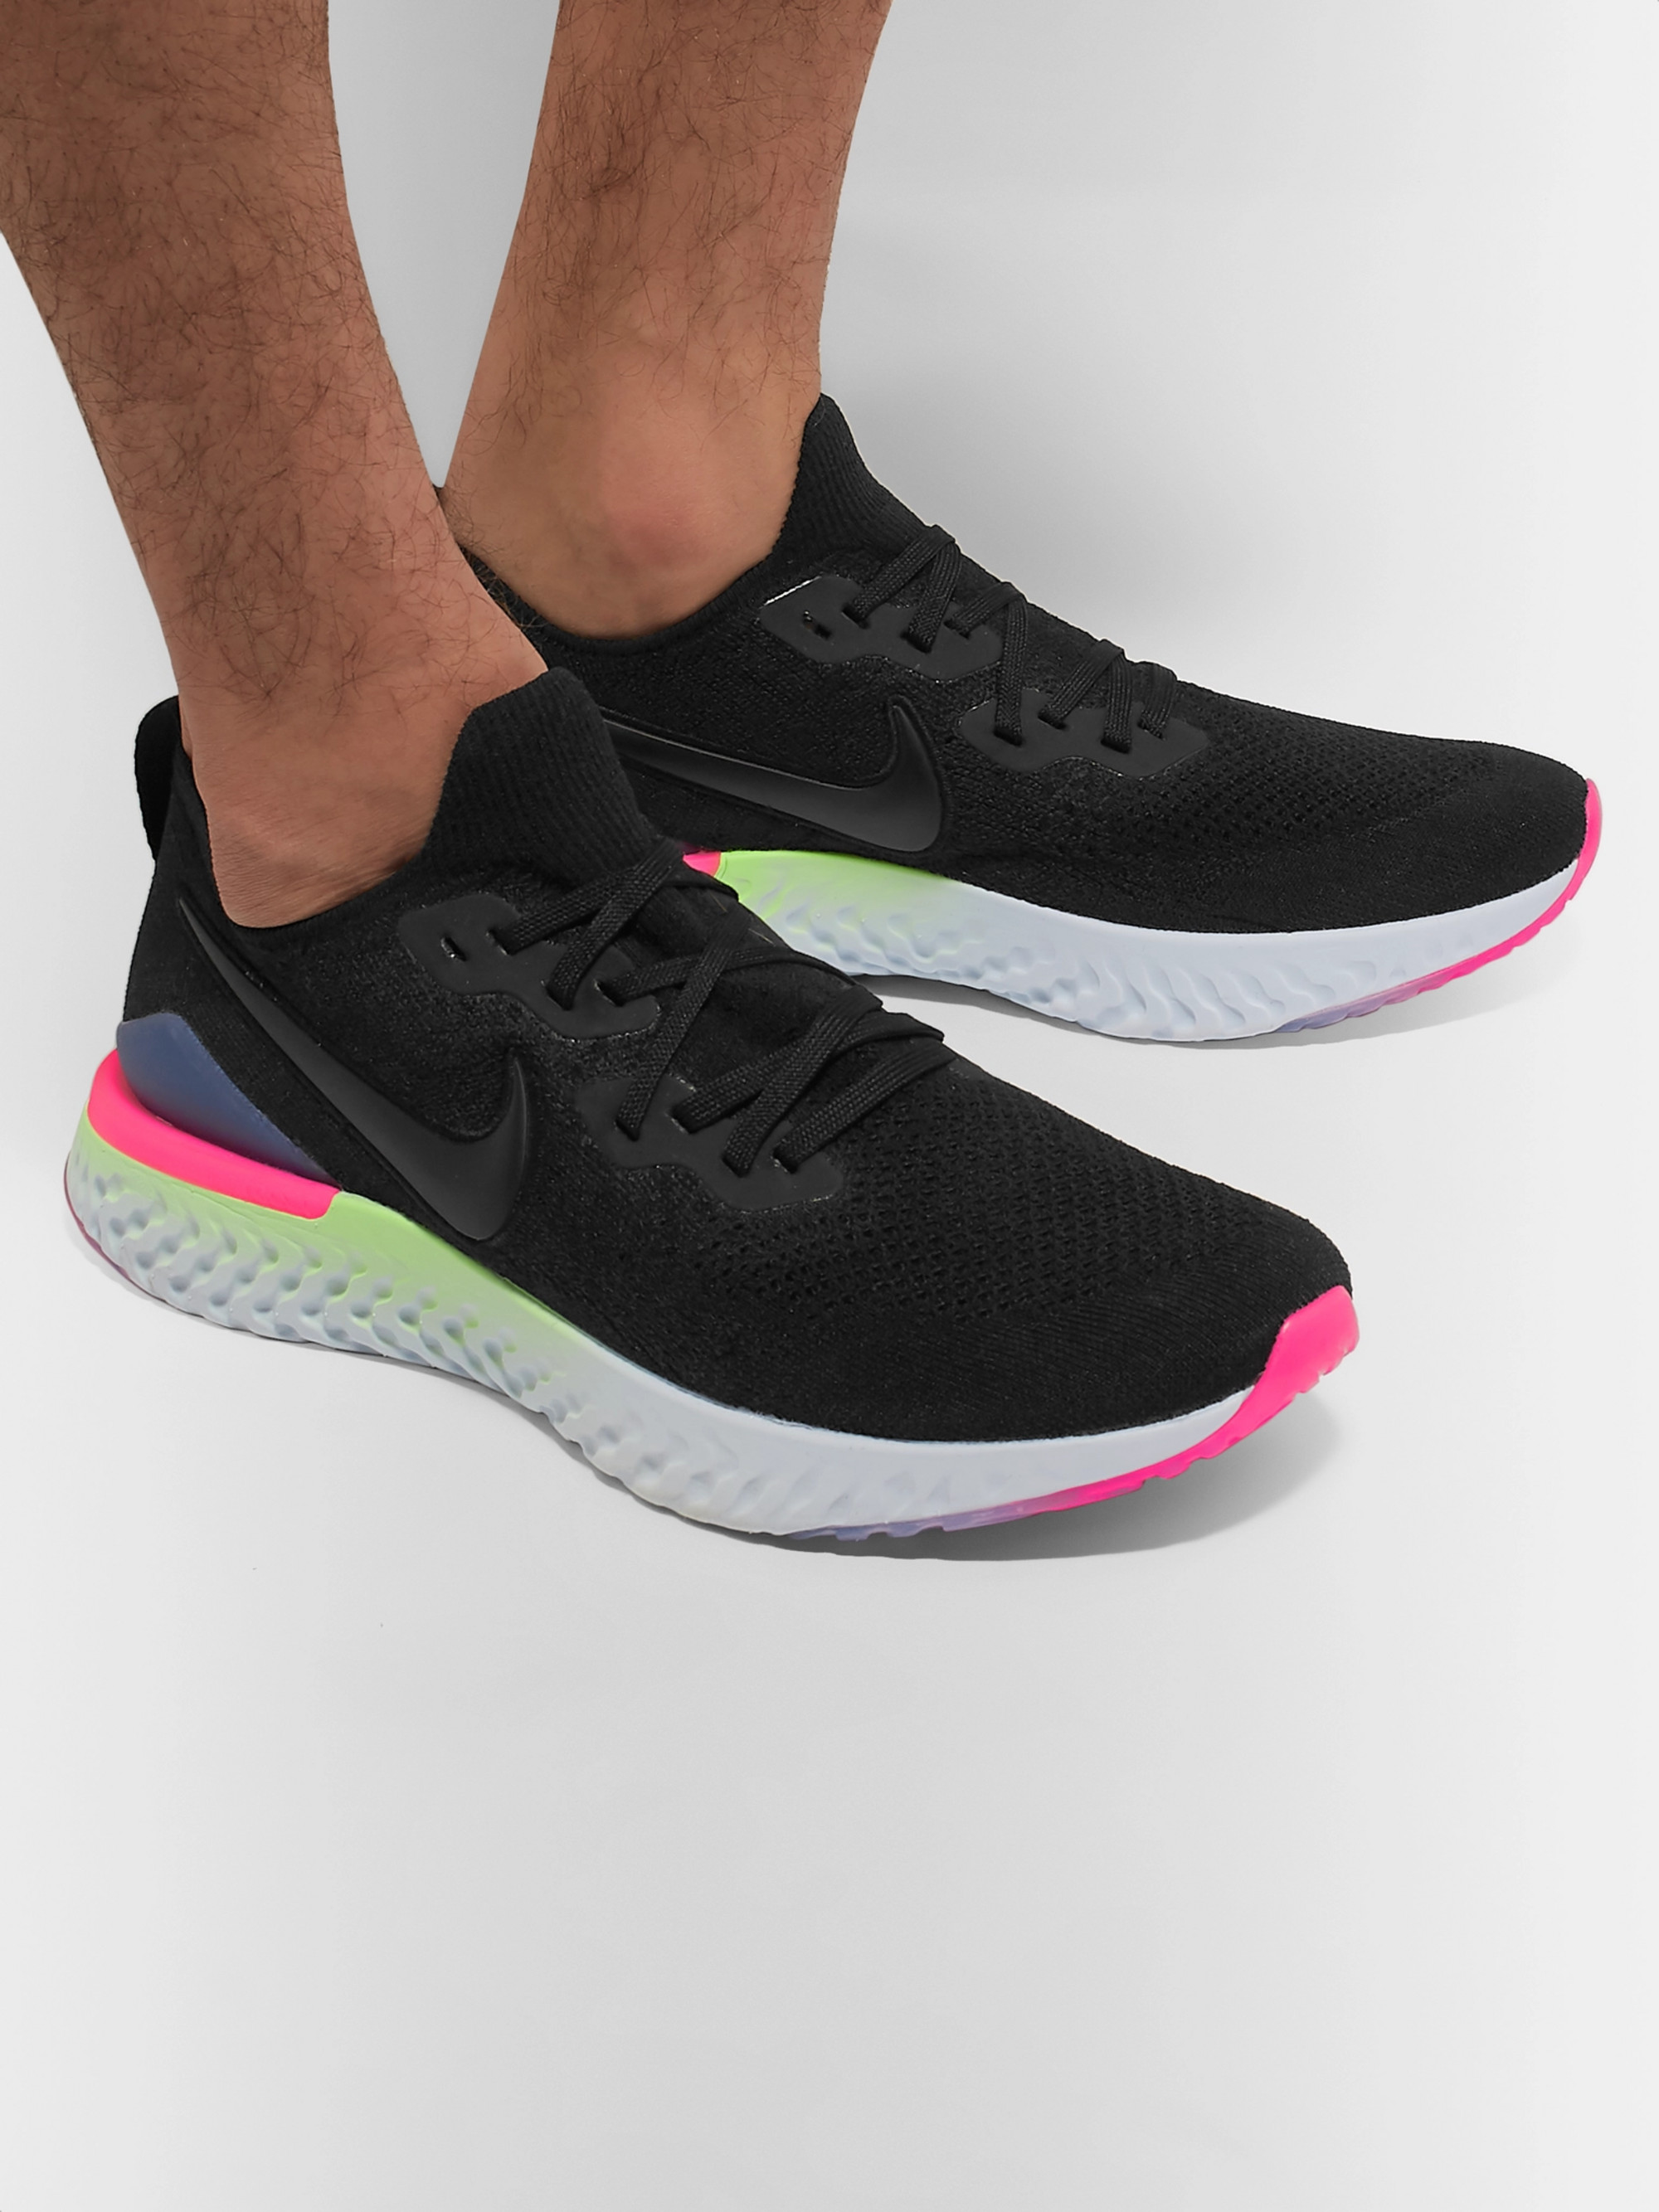 379020a2a Black Epic React Flyknit 2 Running Sneakers | Nike Running | MR PORTER